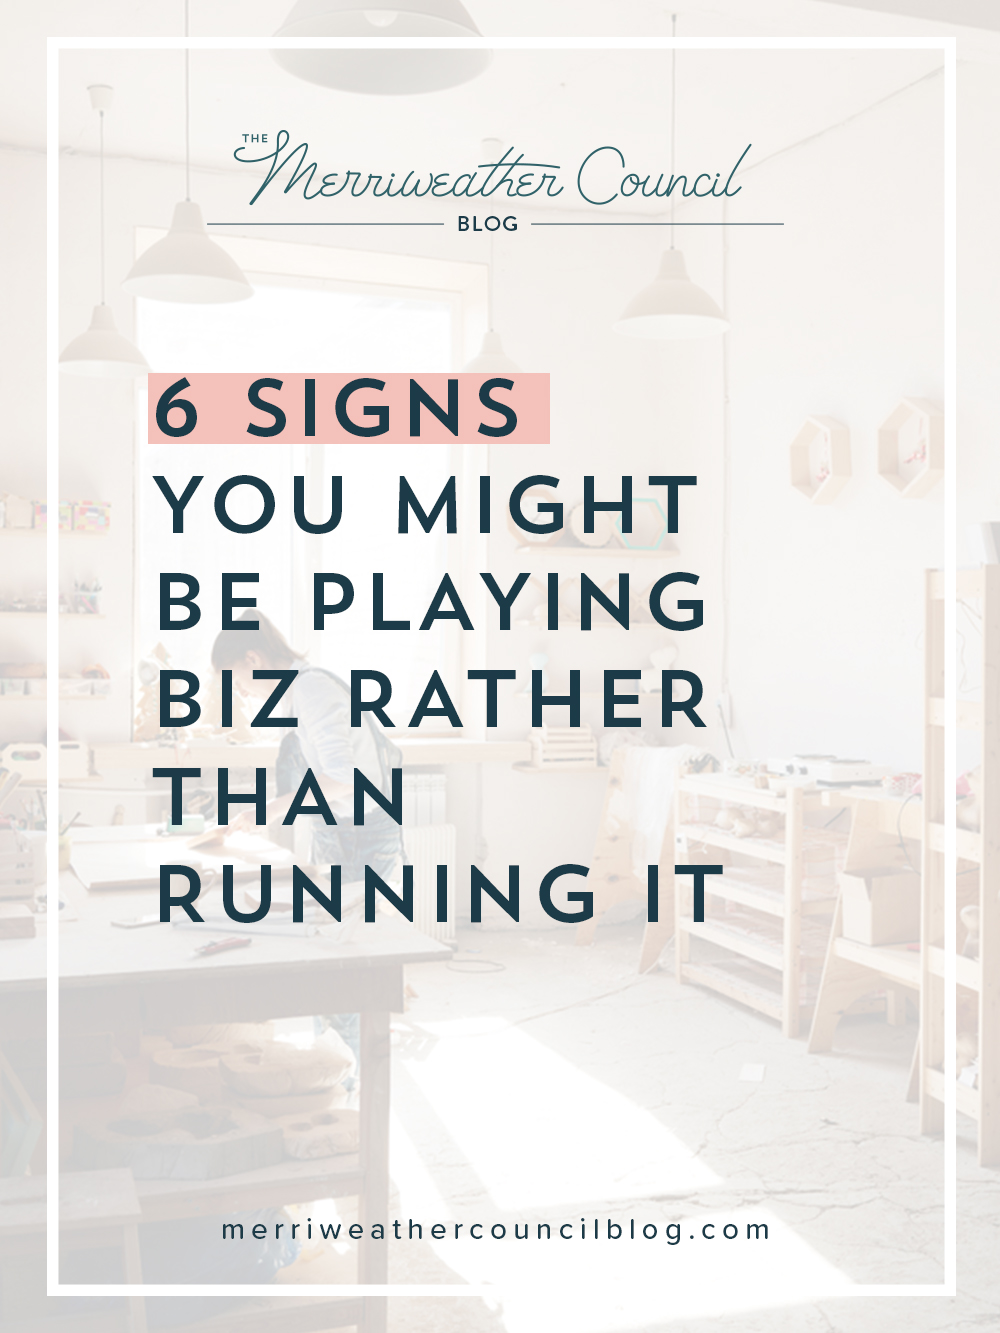 6 signs you might be playing biz, rather than running it | the merriweather council blog